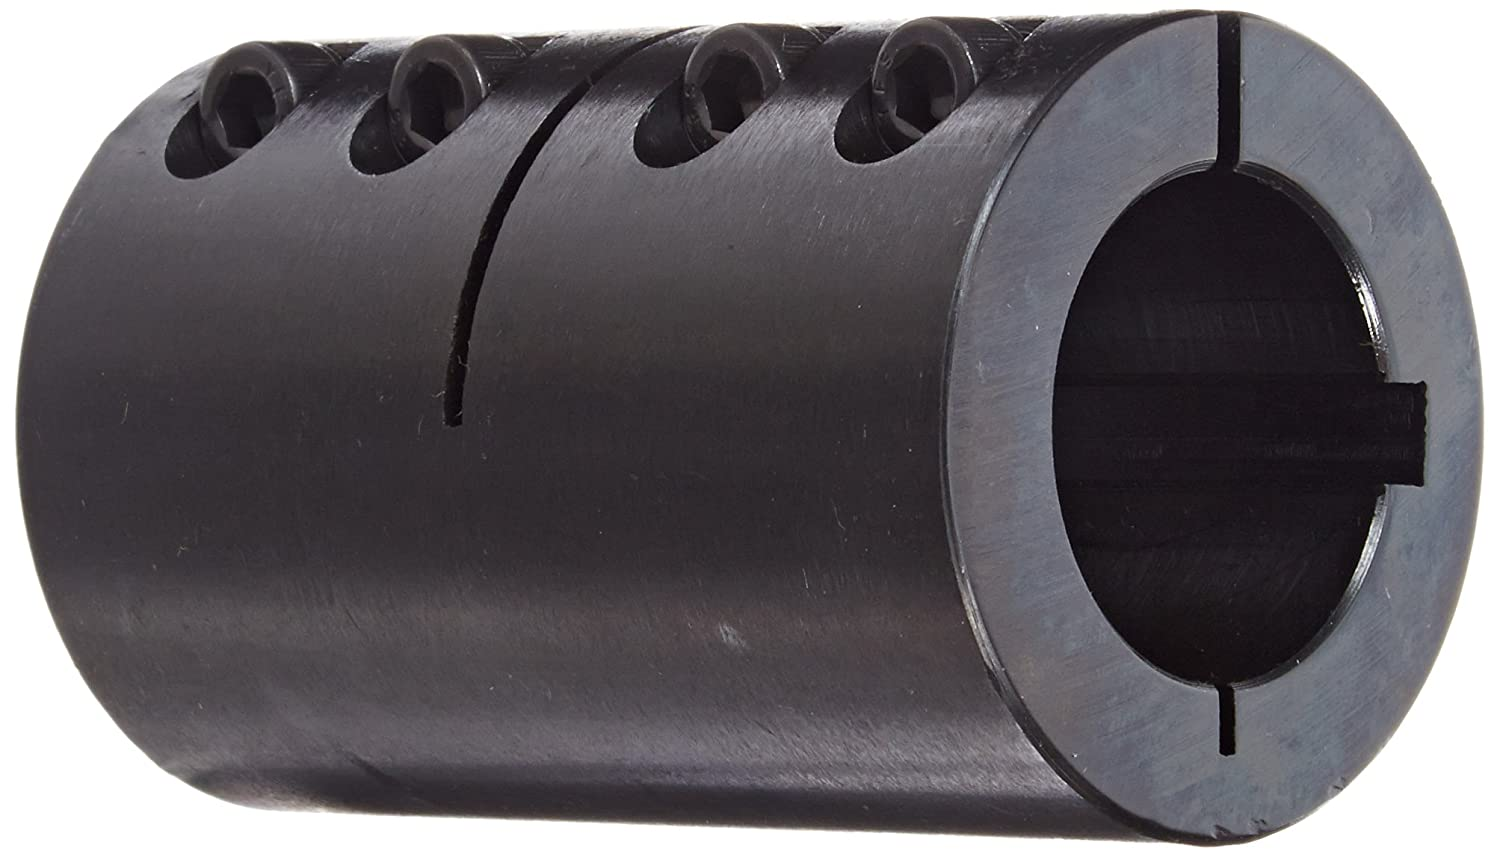 Climax Part ISCC-125-125-KW Mild Steel, Black Oxide Plating Clamping Coupling, 1 1/4 inch X 1 1/4 inch bore, 2 1/16 inch OD, 3 1/4 inch length, 1/4-28 x 3/4 Clamp Screw Climax Metal Products Company